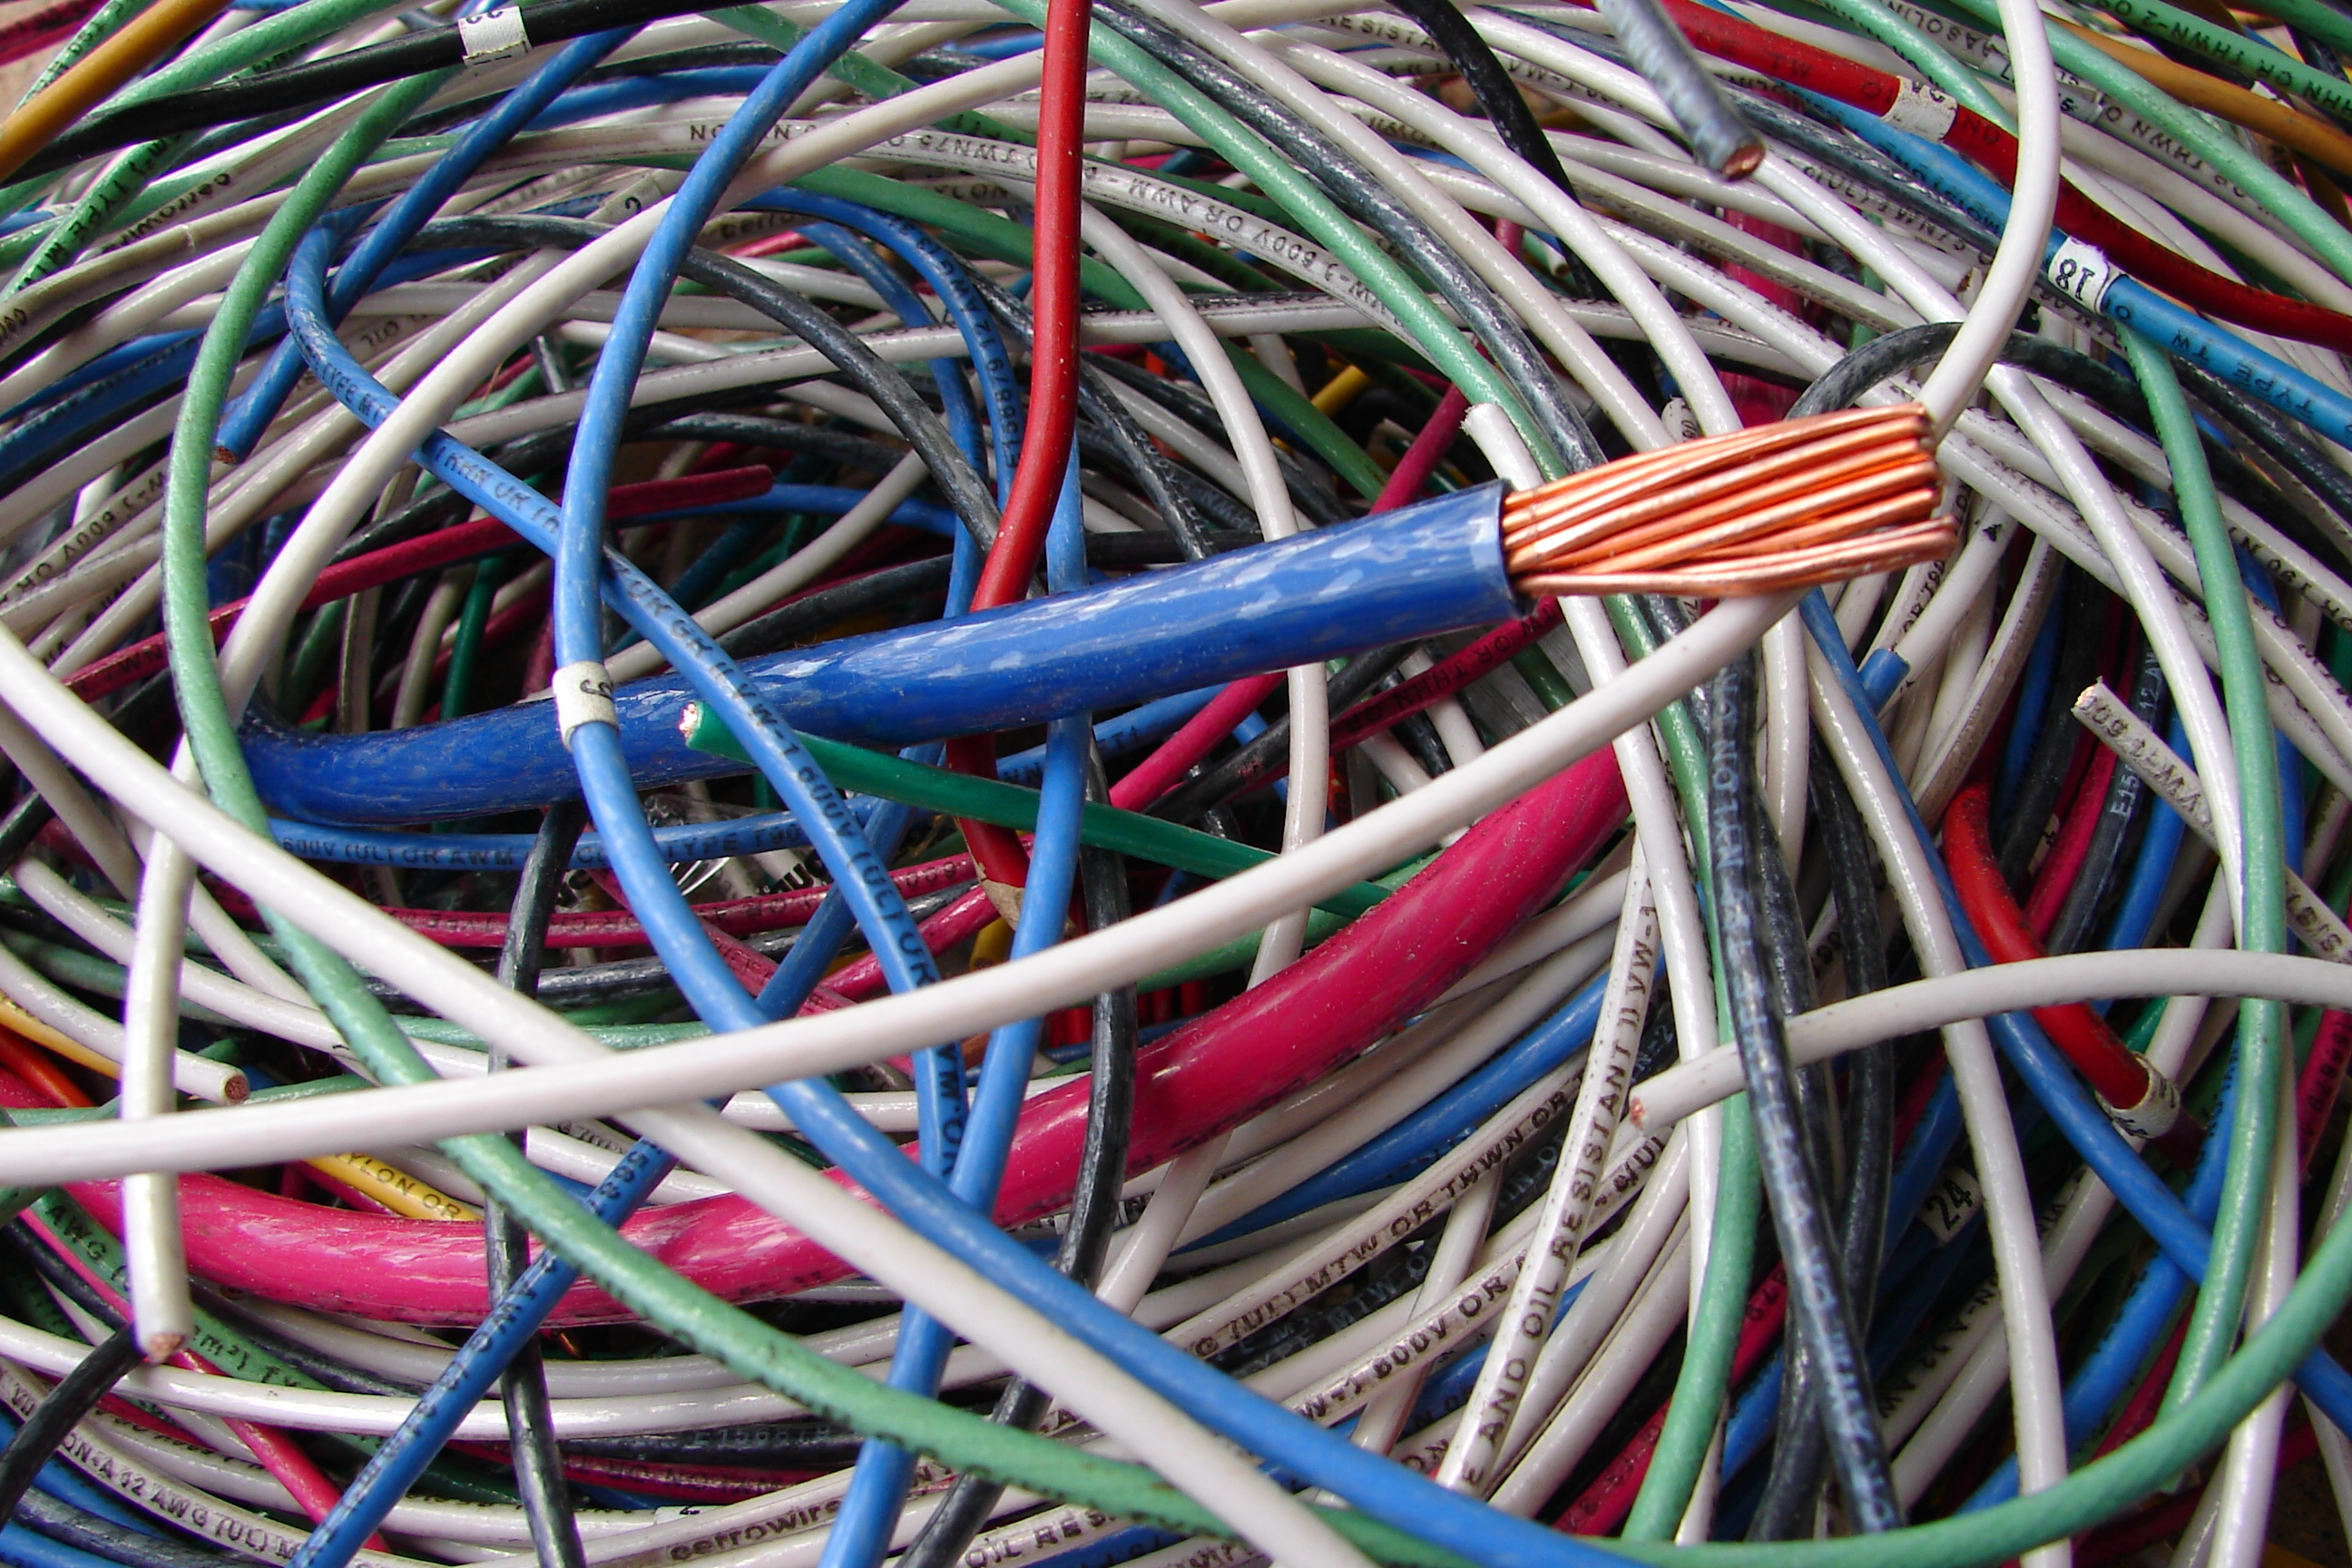 Colorful Electrical Wires 1 by FantasyStock on DeviantArt